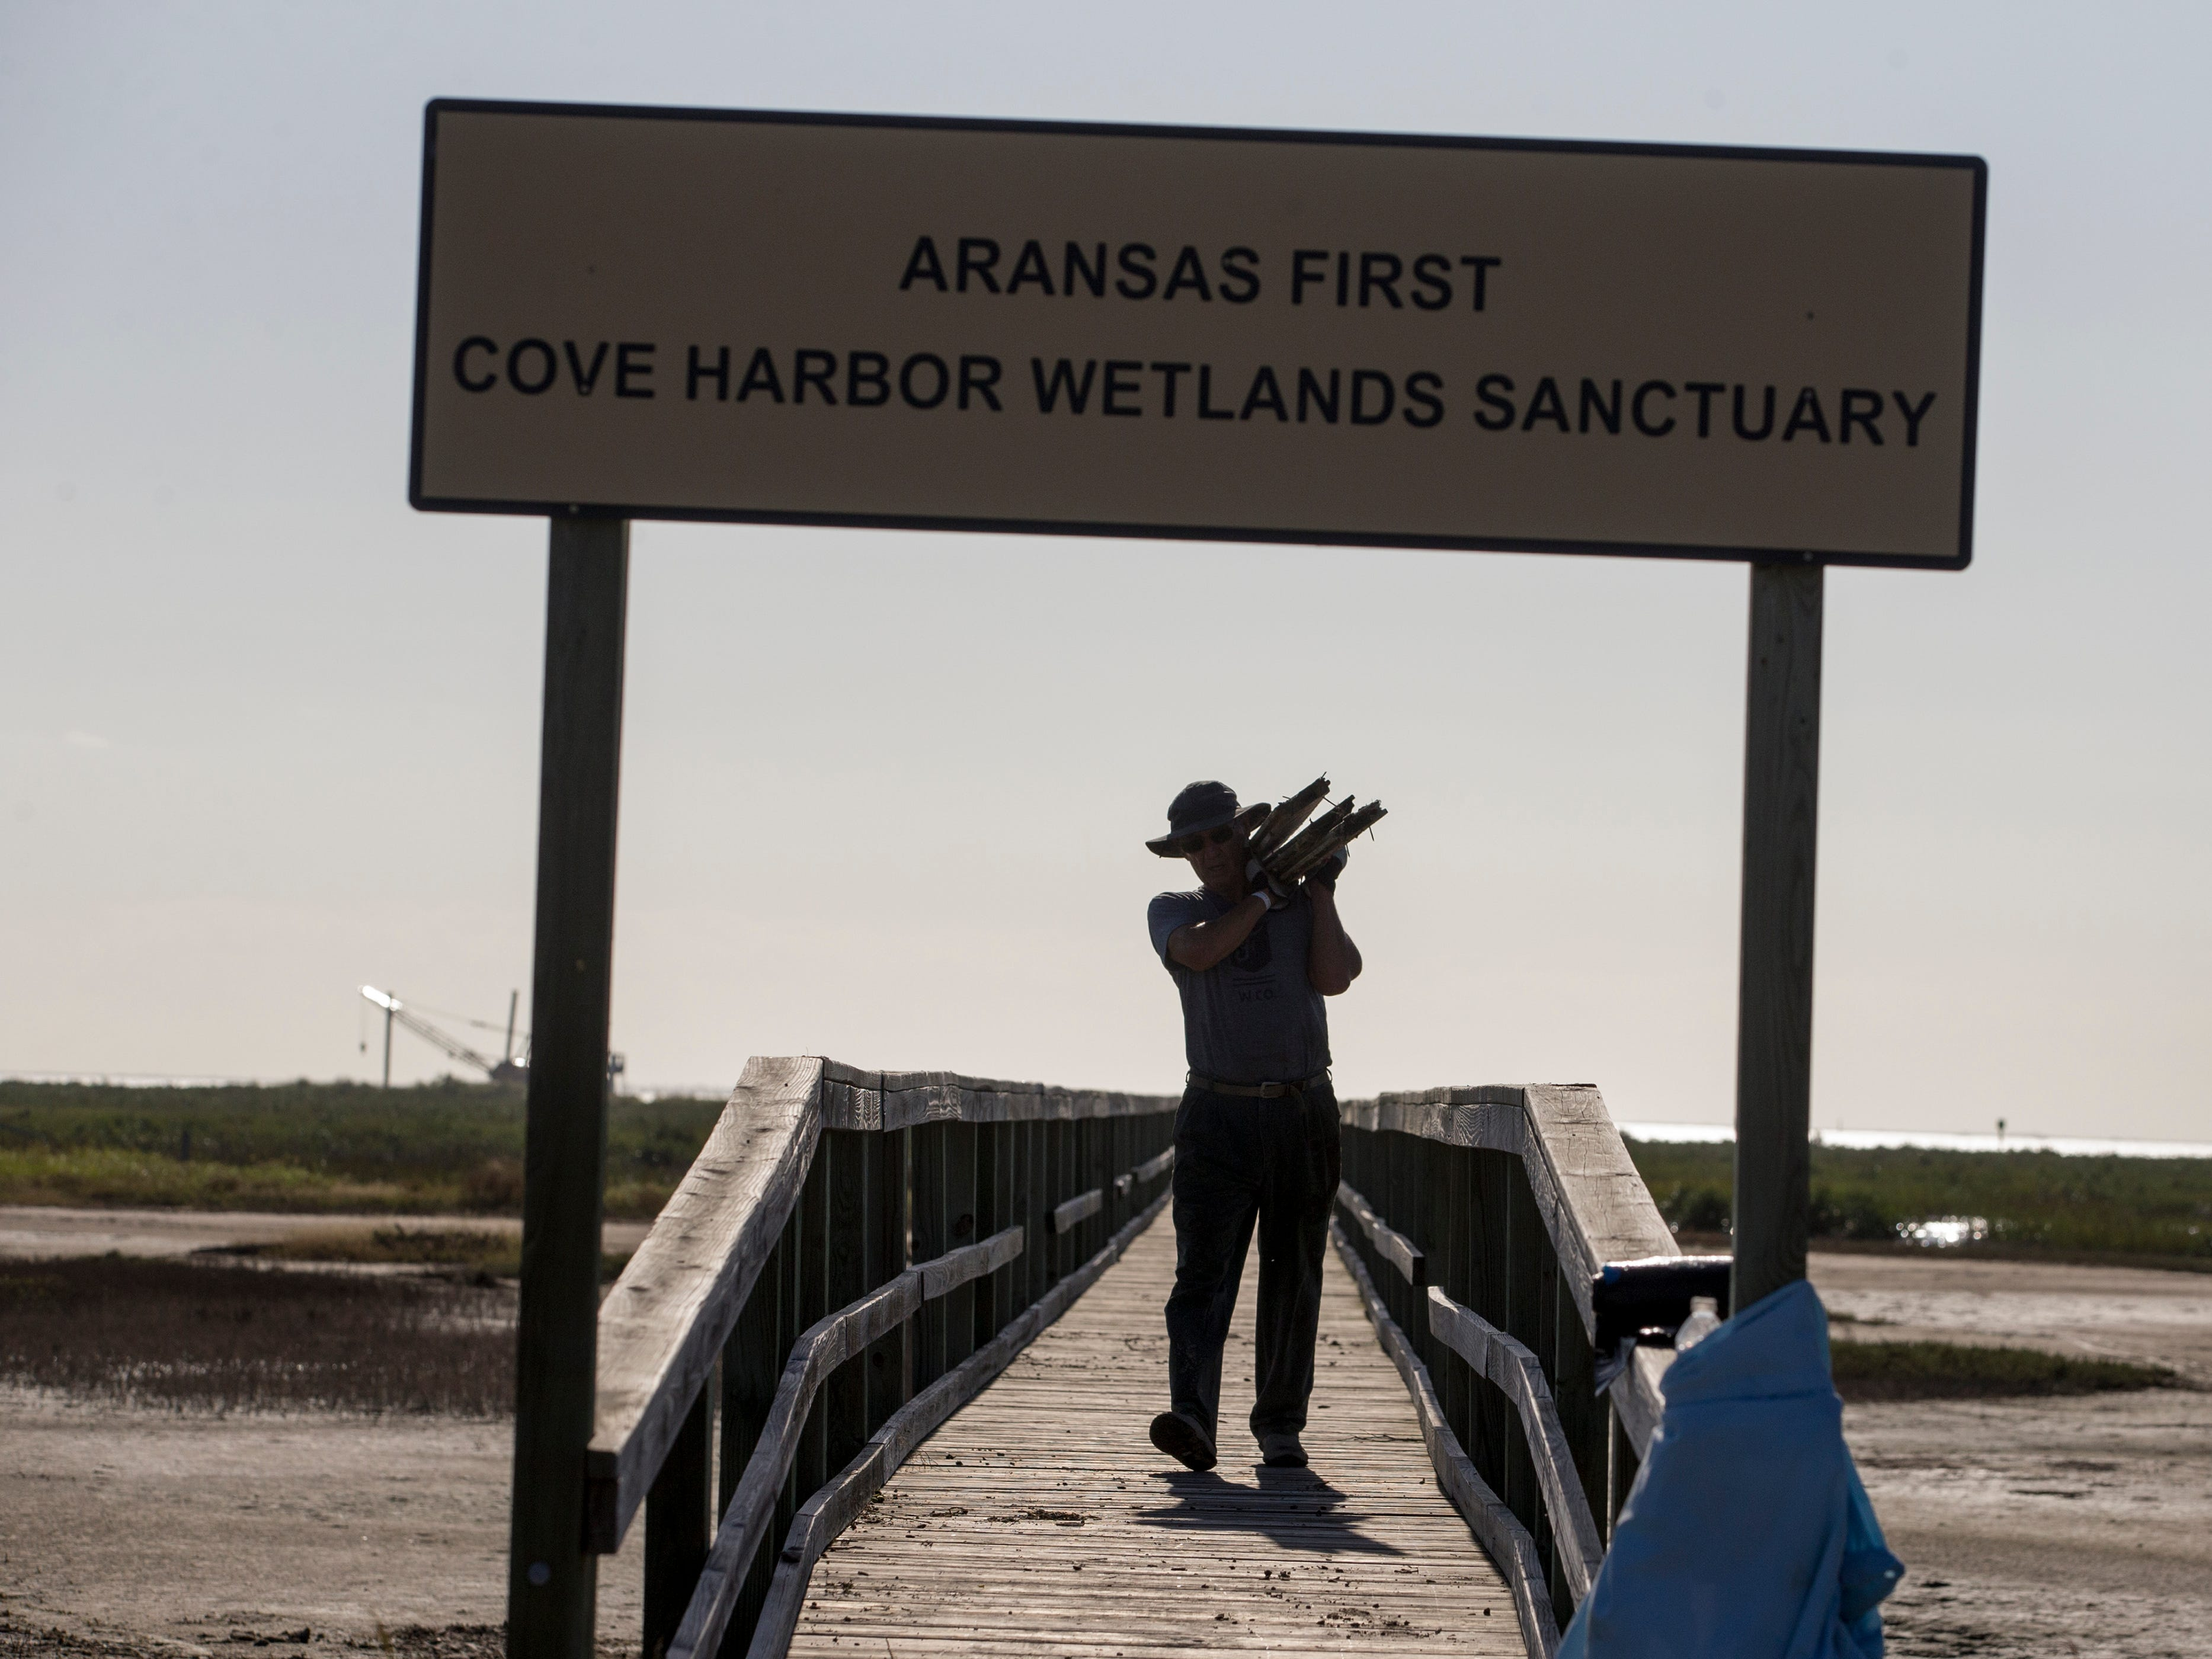 Ronnie Wotipka cleans up Cove Harbor Wetlands Sanctuary in Aransas County on Tuesday, October 30, 2018 during a cleanup organized by Keep Aransas County Beautiful.Volunteers were working to clean debris from the wetlands and harbor that was scattered by Hurricane Harvey over 14 months ago.